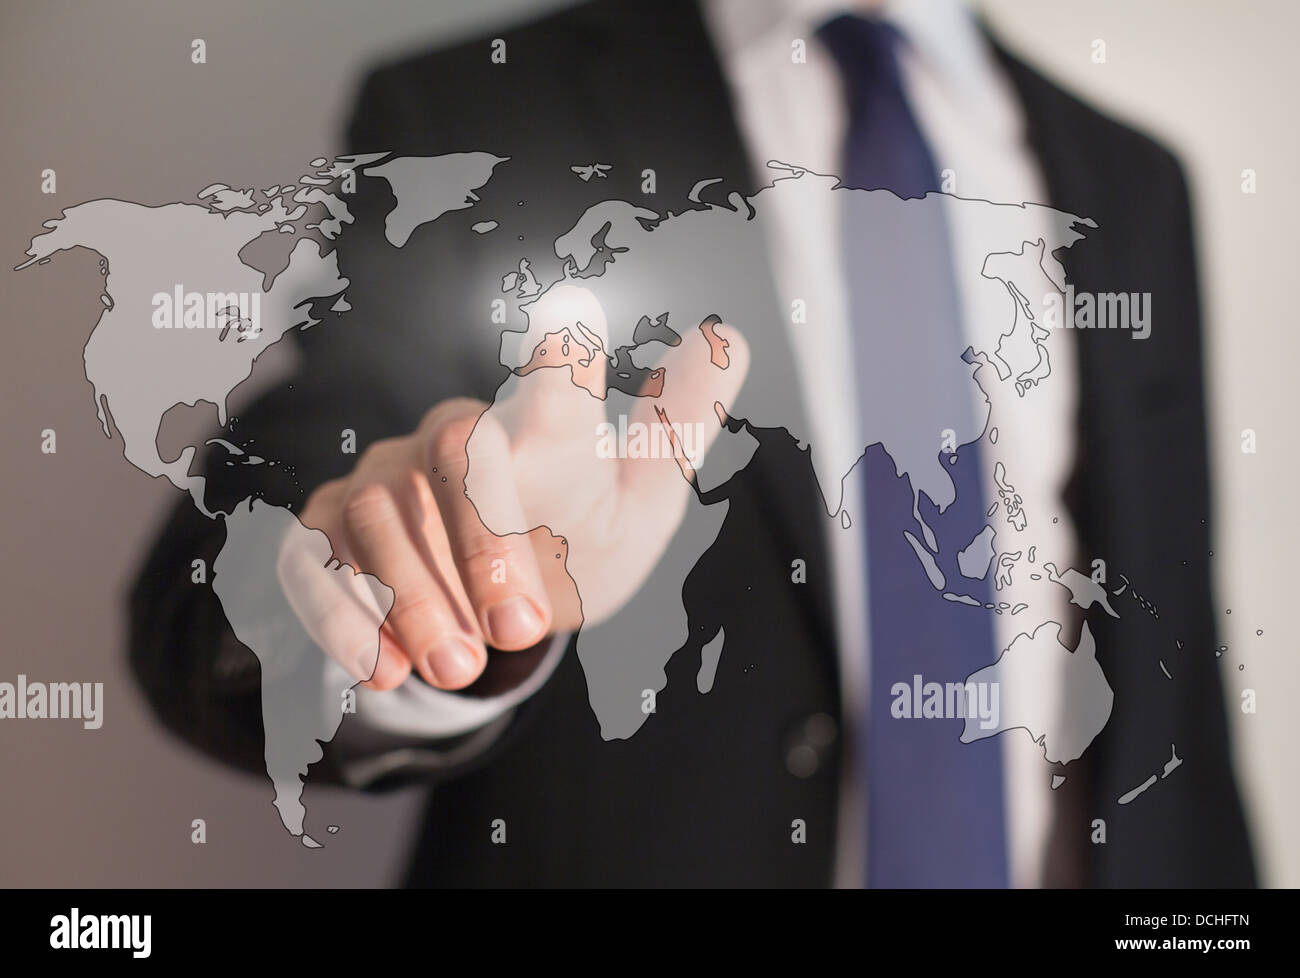 worldwide business and internet technology - Stock Image